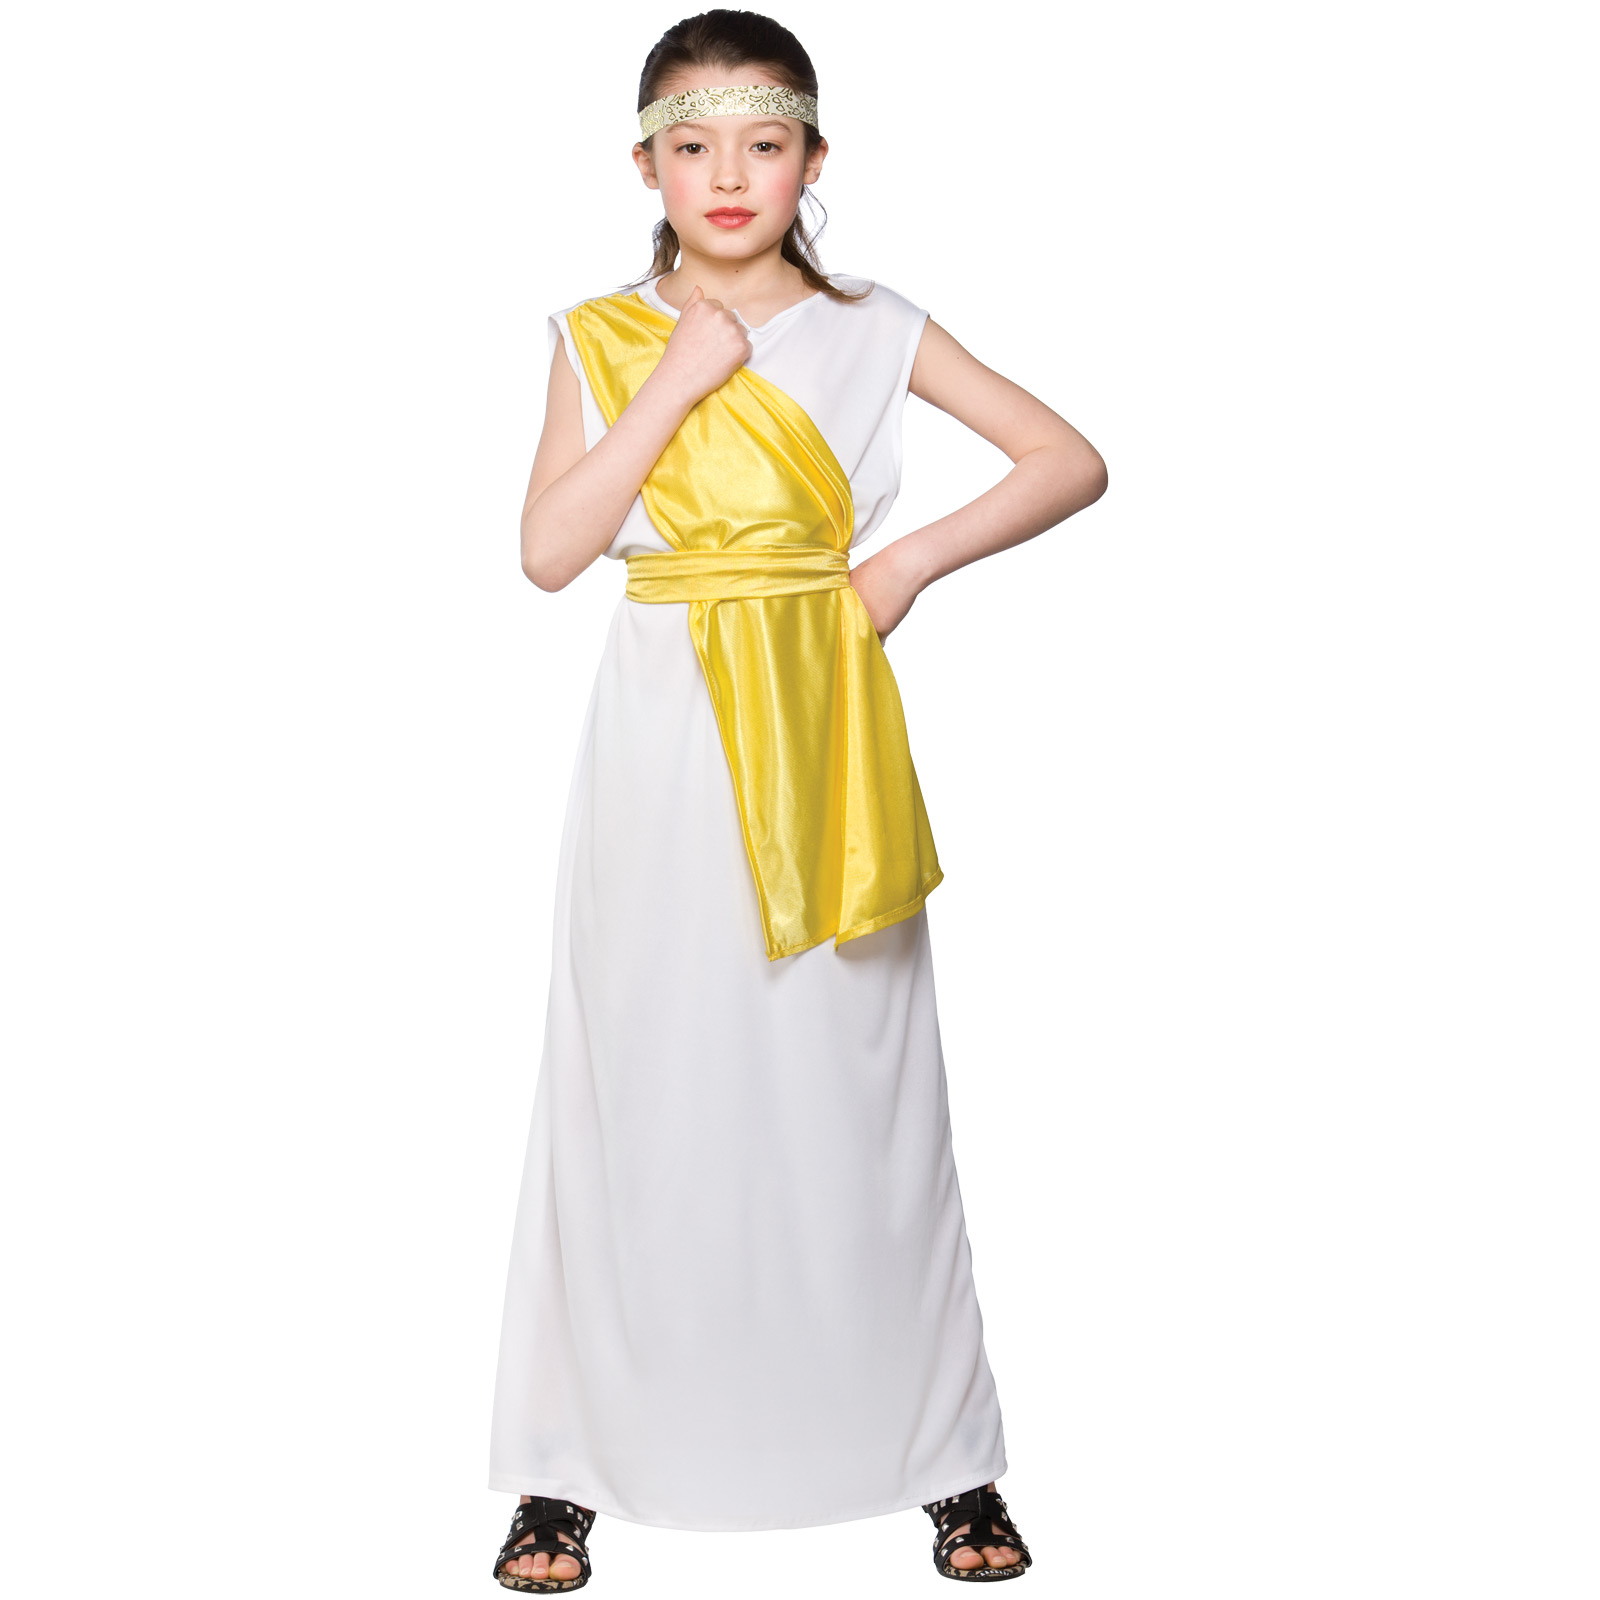 Child-Girls-Ancient-Greek-Girl-Costume-Fancy-Dress-Up-Role-Play-Party-Halloween